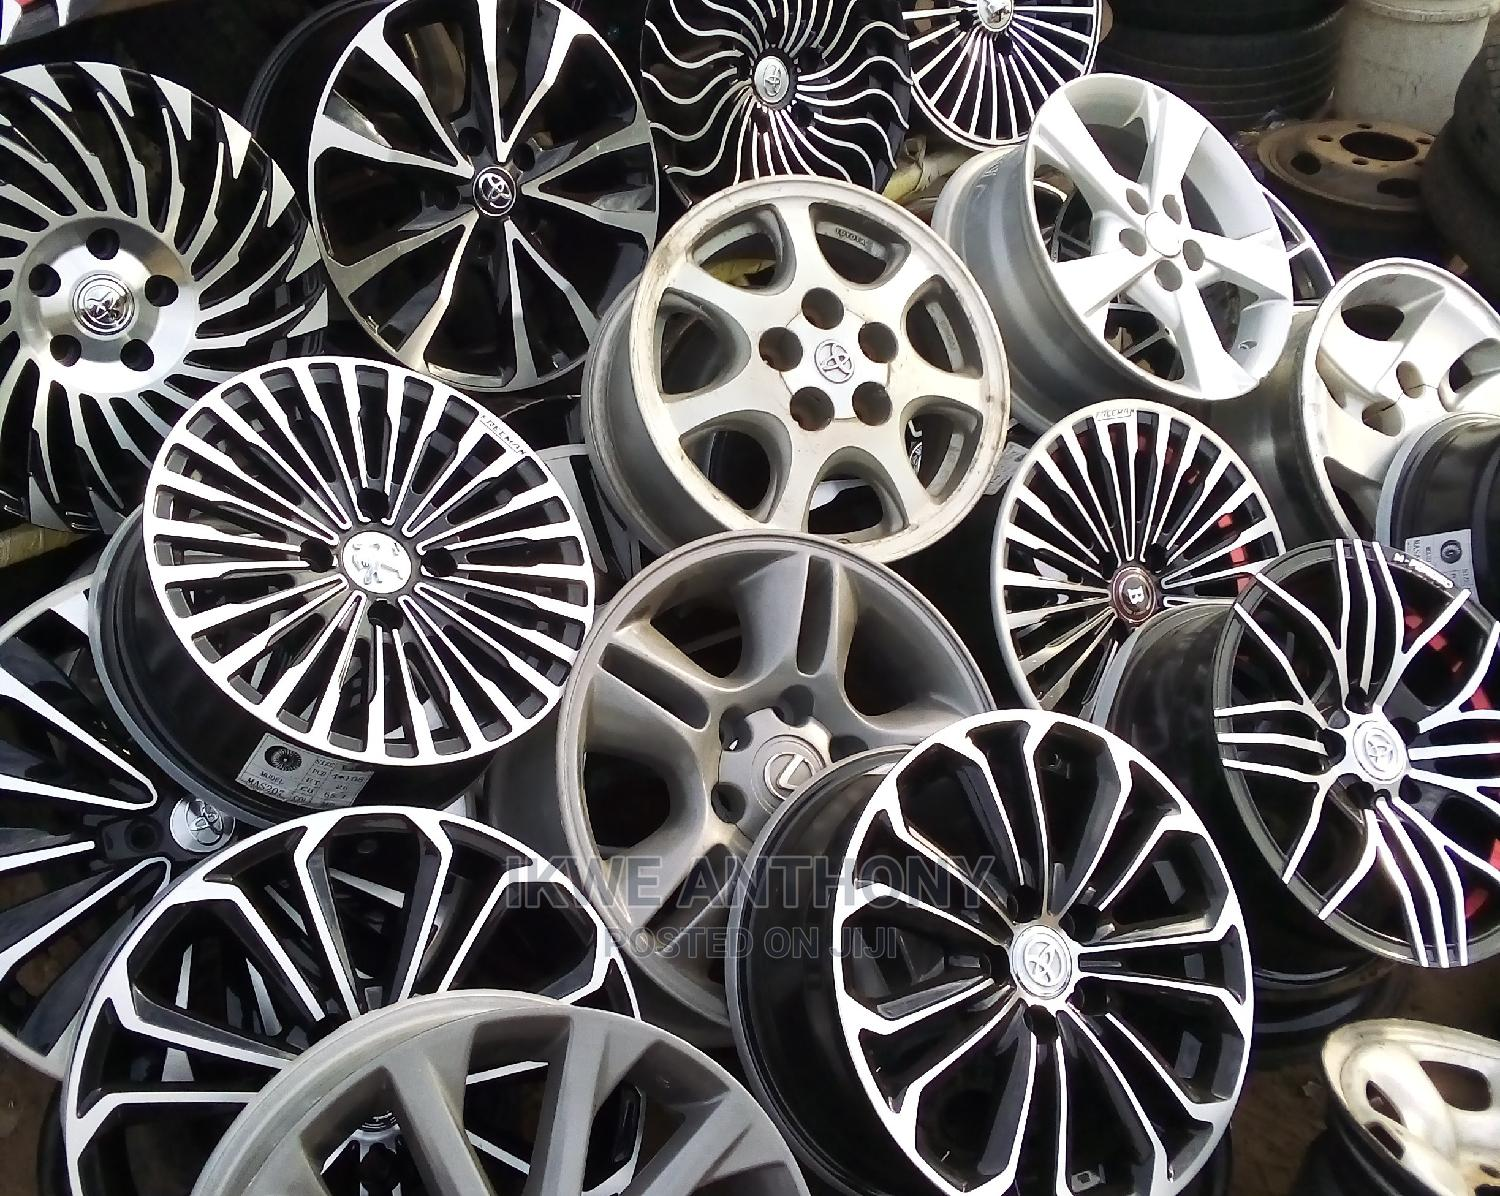 All Kinds of Rims and Tires